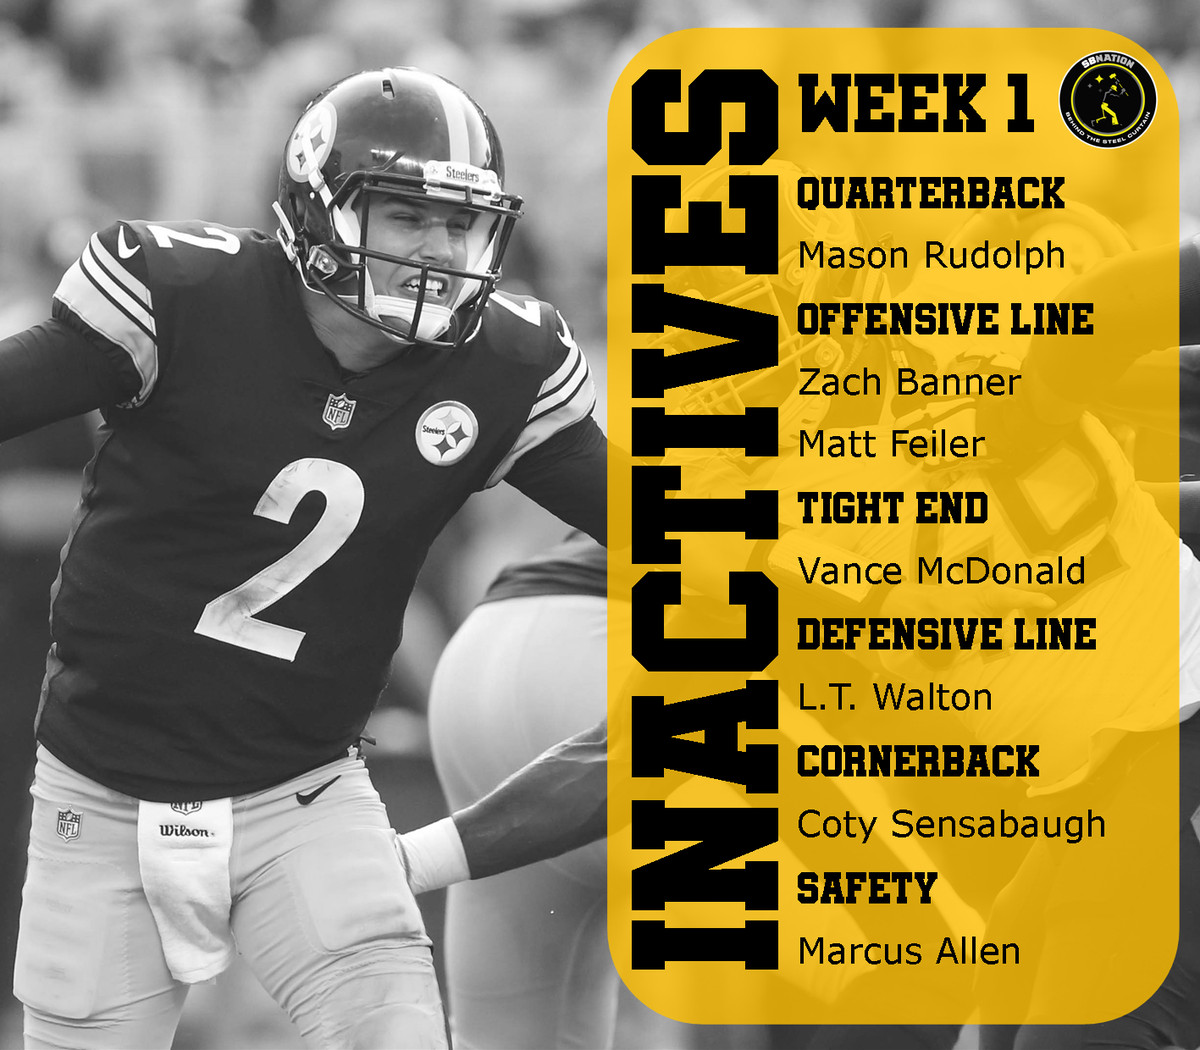 Pittsburgh Steelers Vs. Cleveland Browns Week 1 Game Day